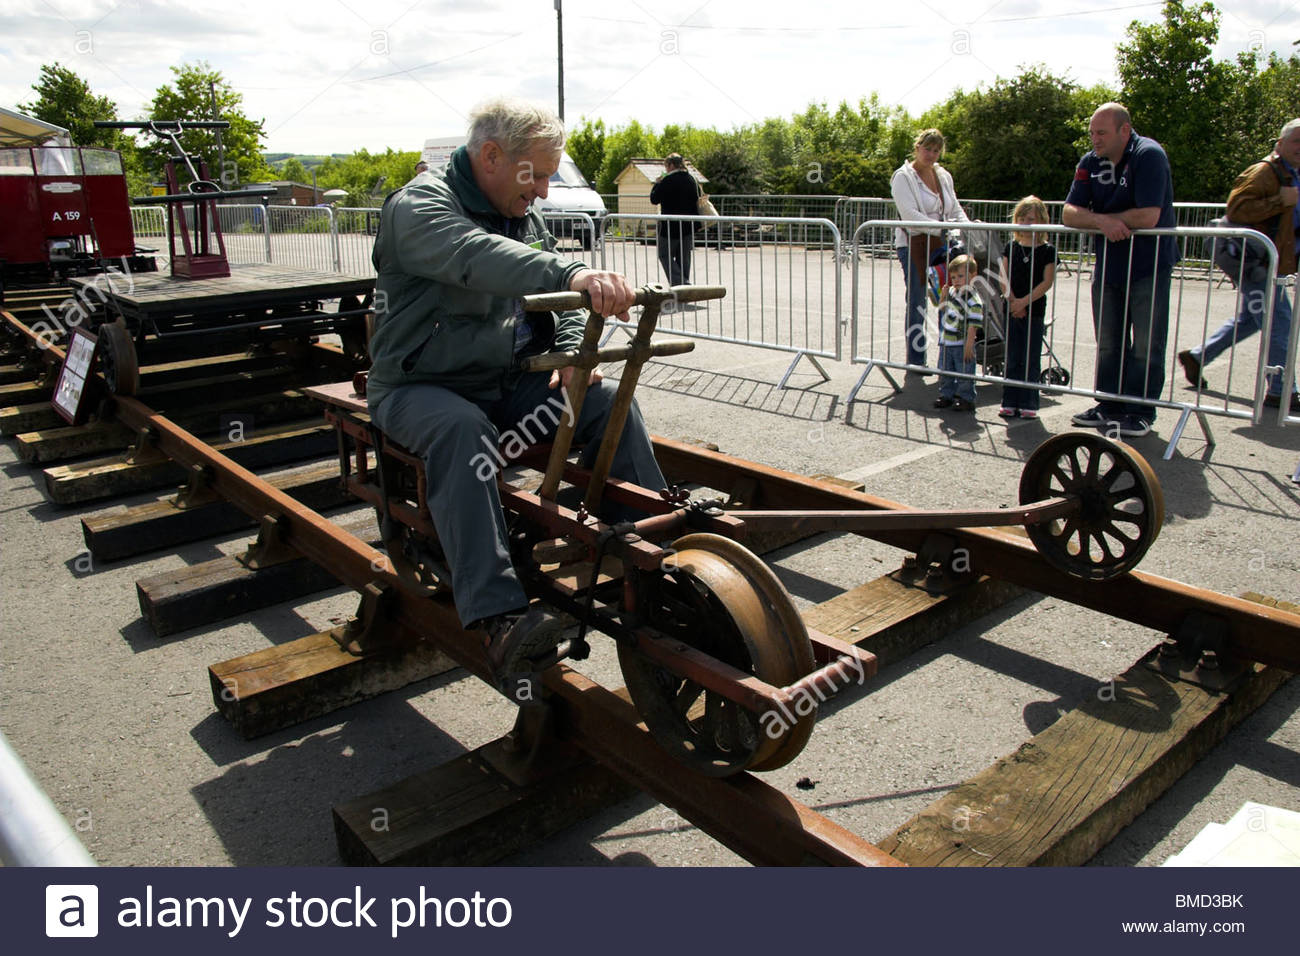 A man demonstrating the use of a railway velocipede at the Gloucestershire & Warwickshire Railway, Toddington, - Stock Image